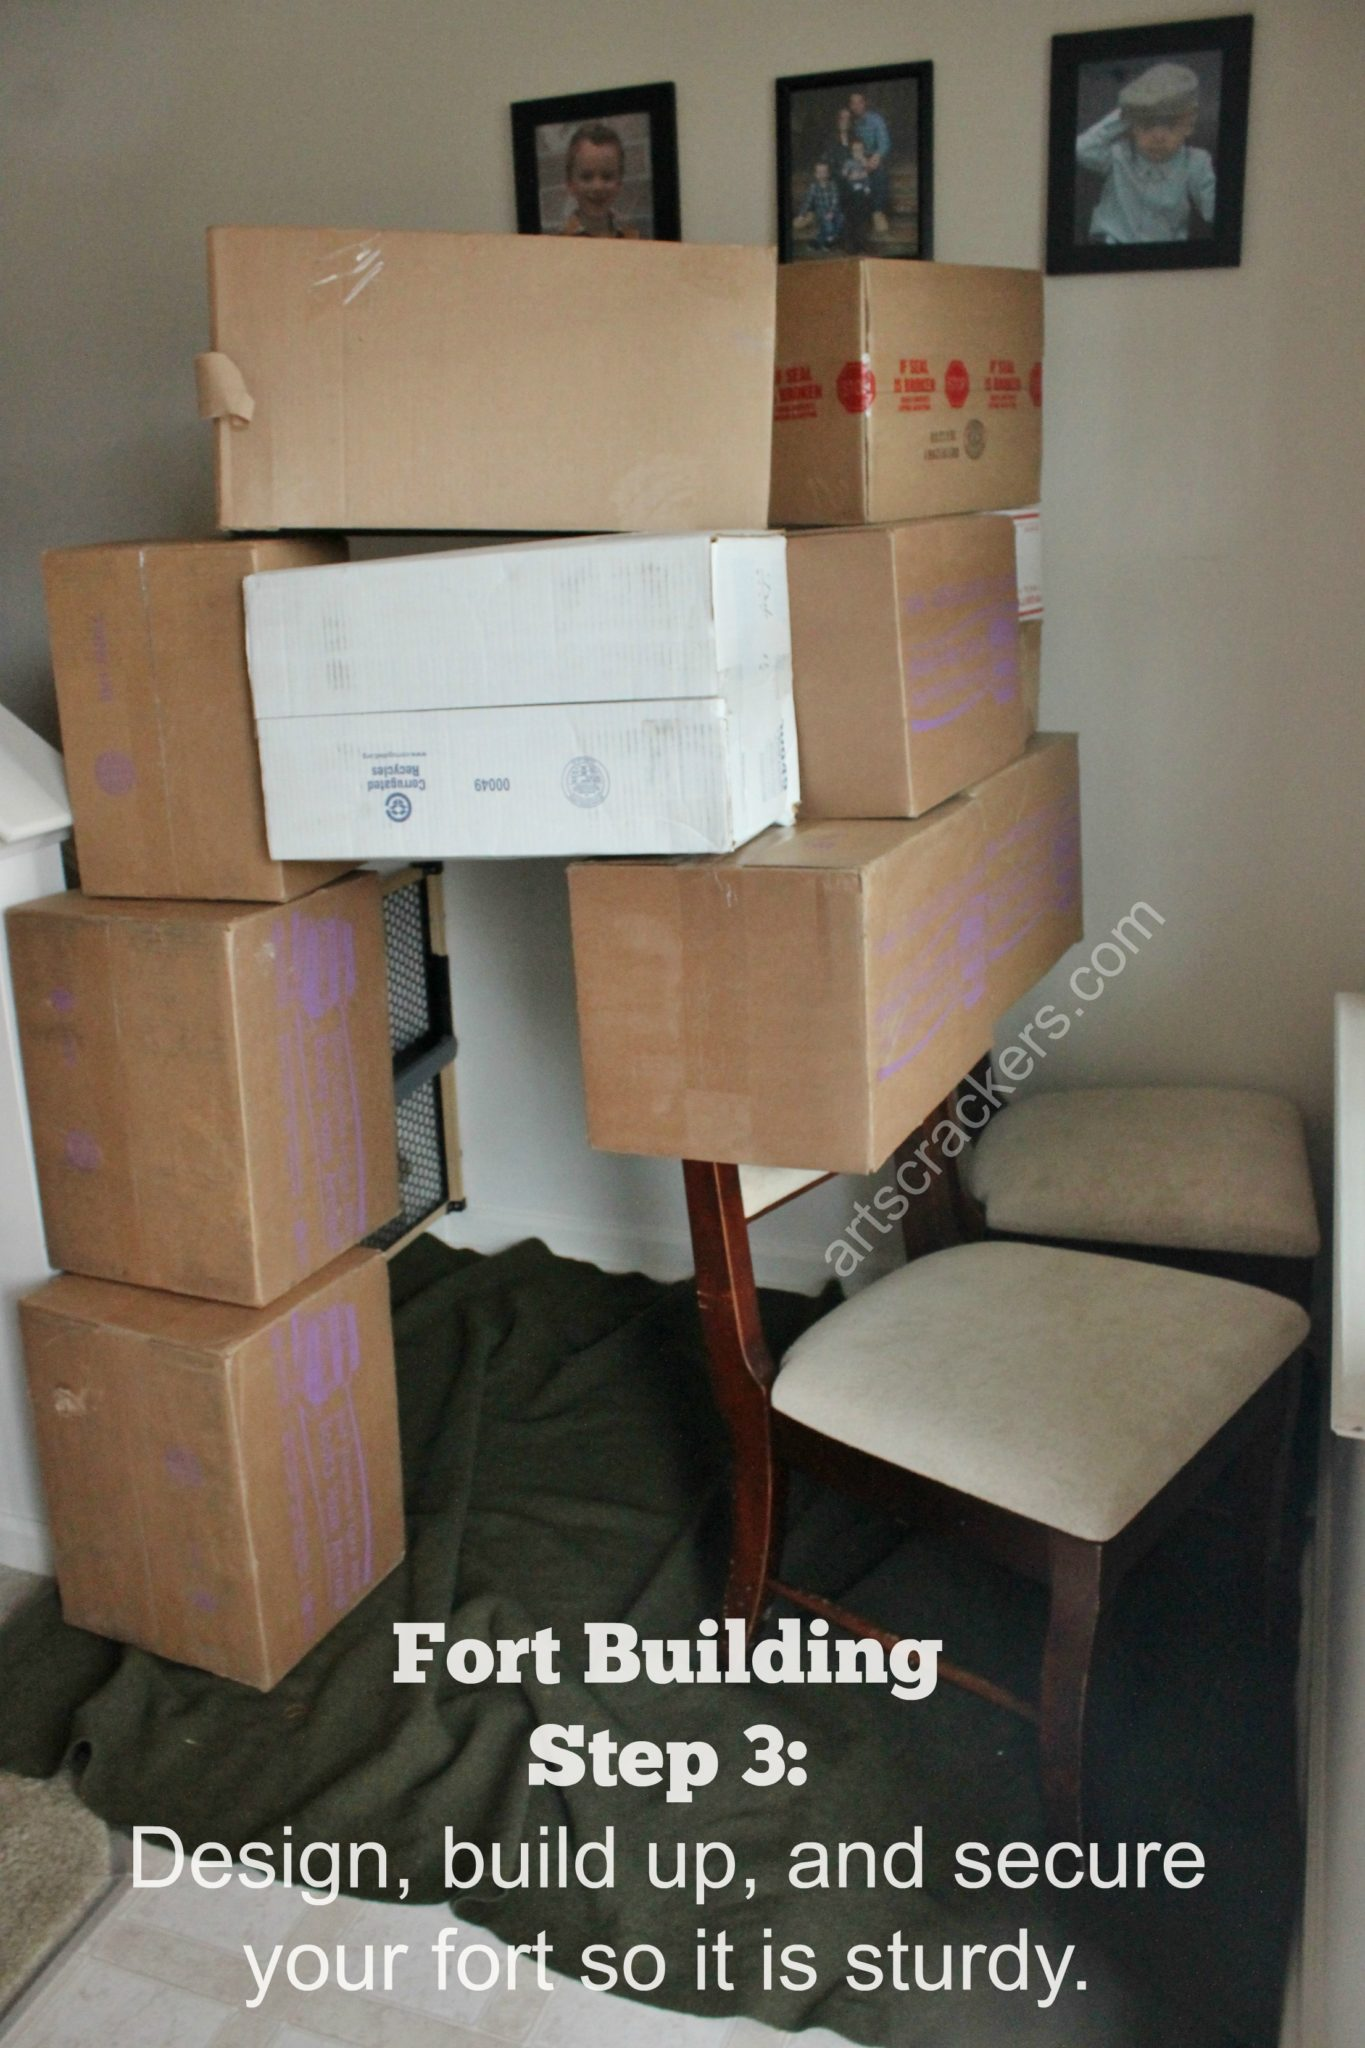 Fort Building Step 3